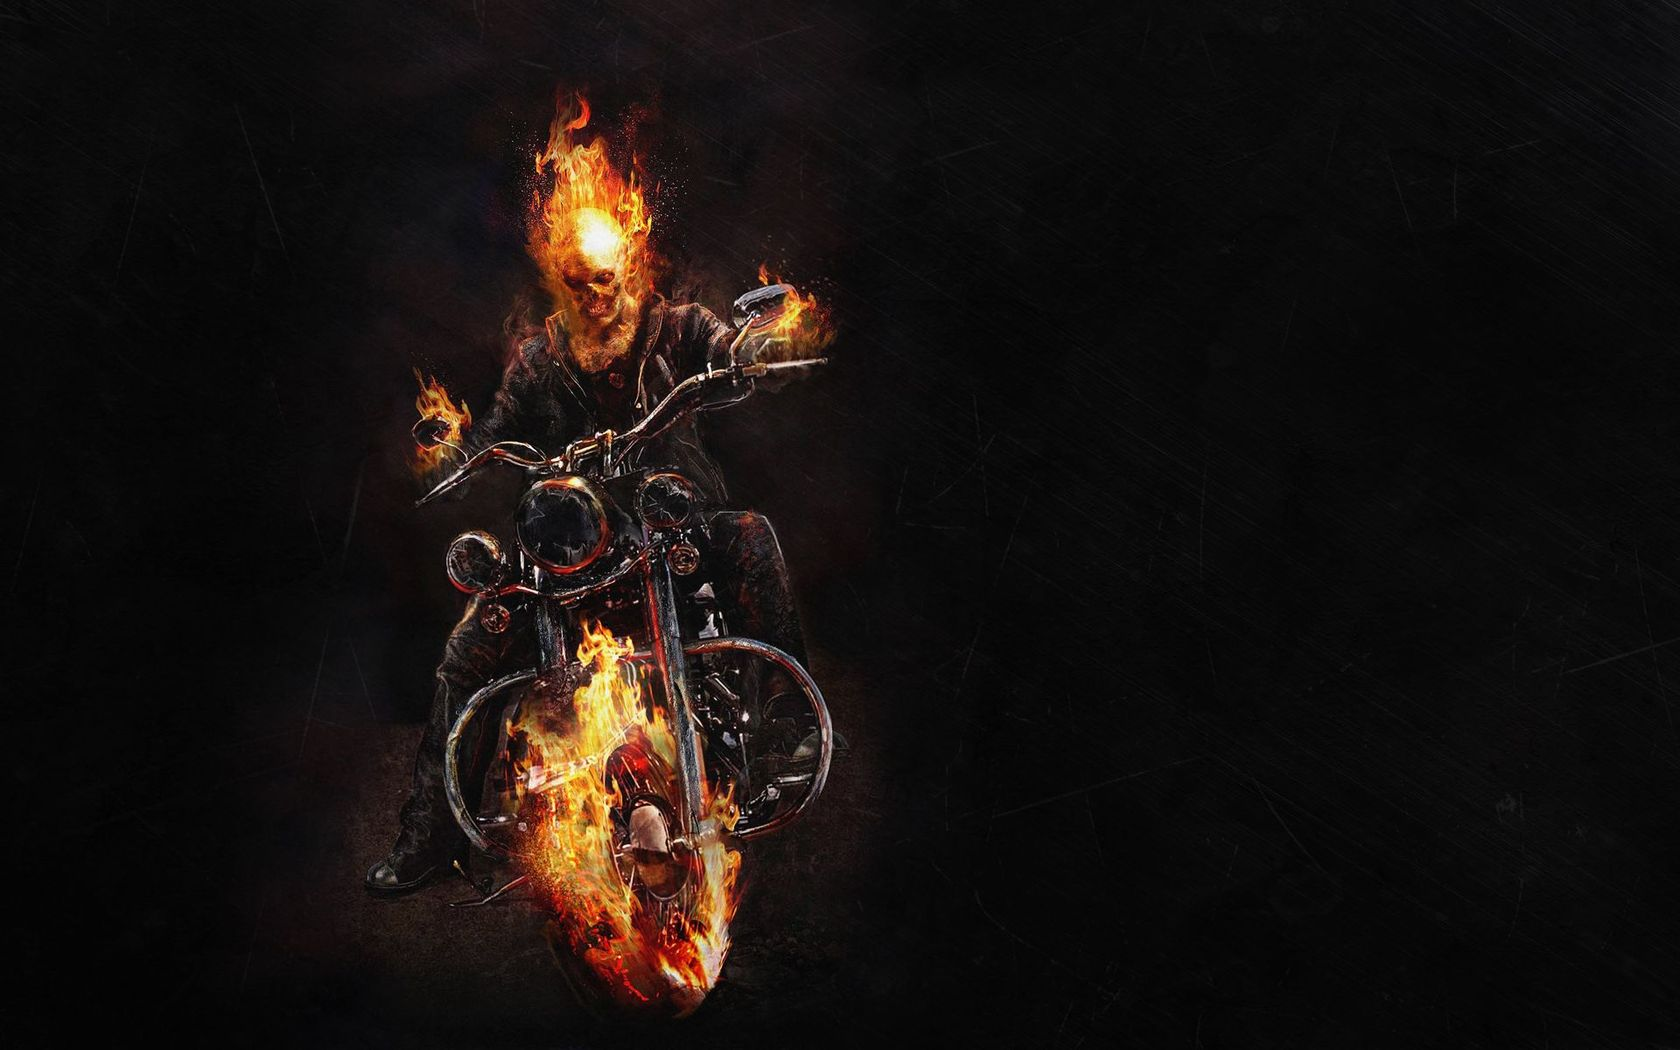 ghost rider wallpaper   LTIF Search Engine 1680x1050